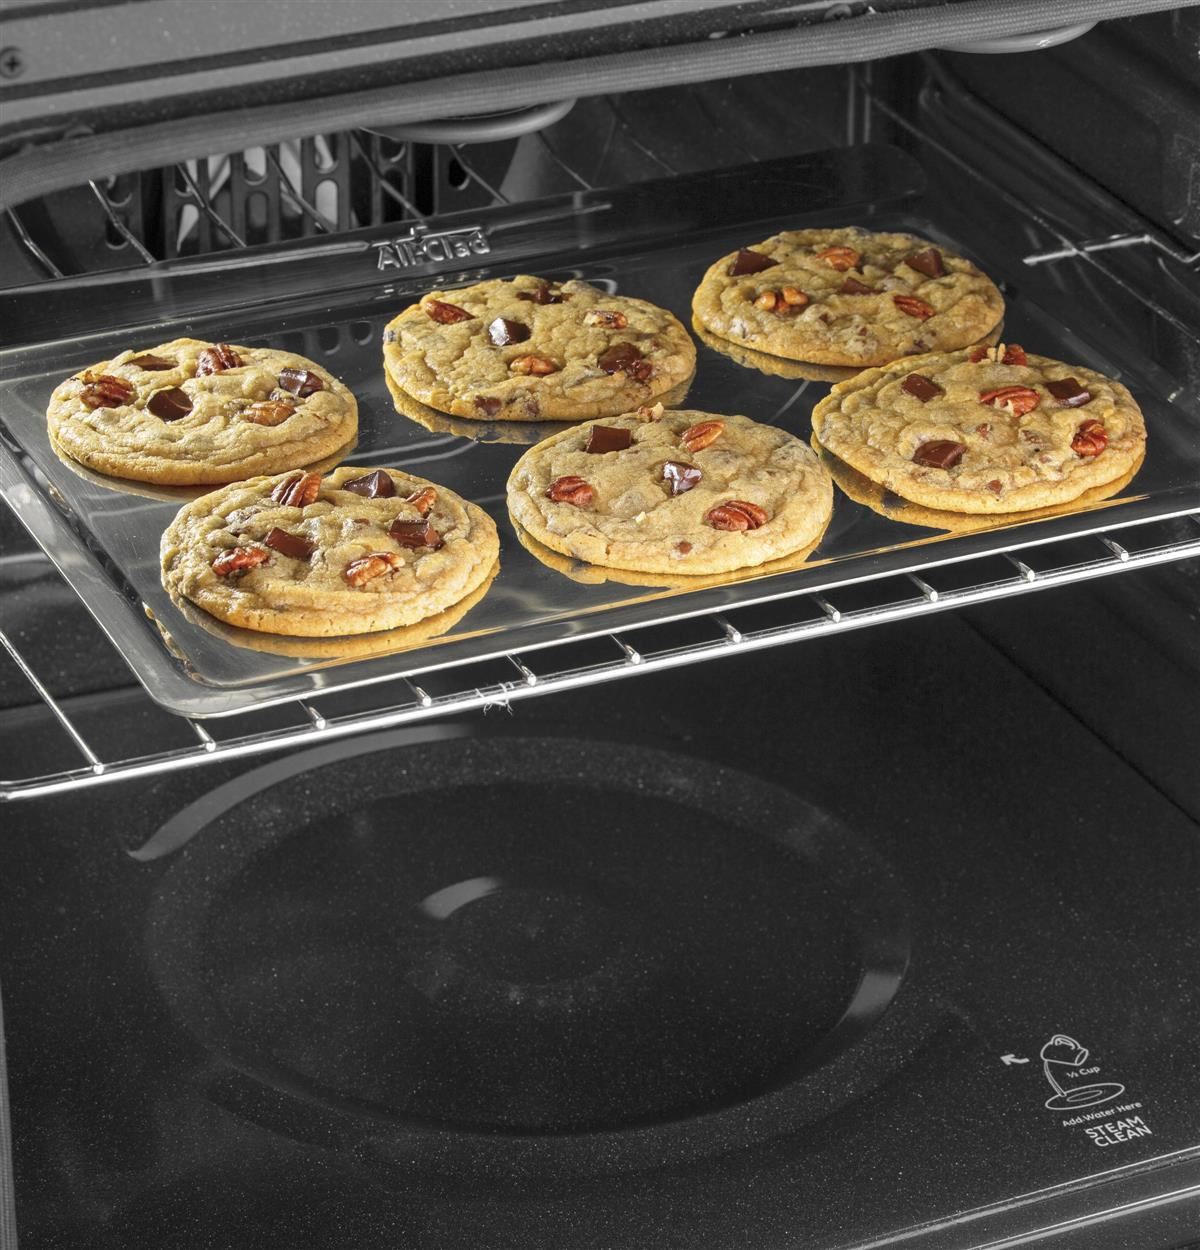 Busy lifestyles don't stop for cooking spills. Hidden bake element sits beneath a smooth surface, making cleaning fast and easy.